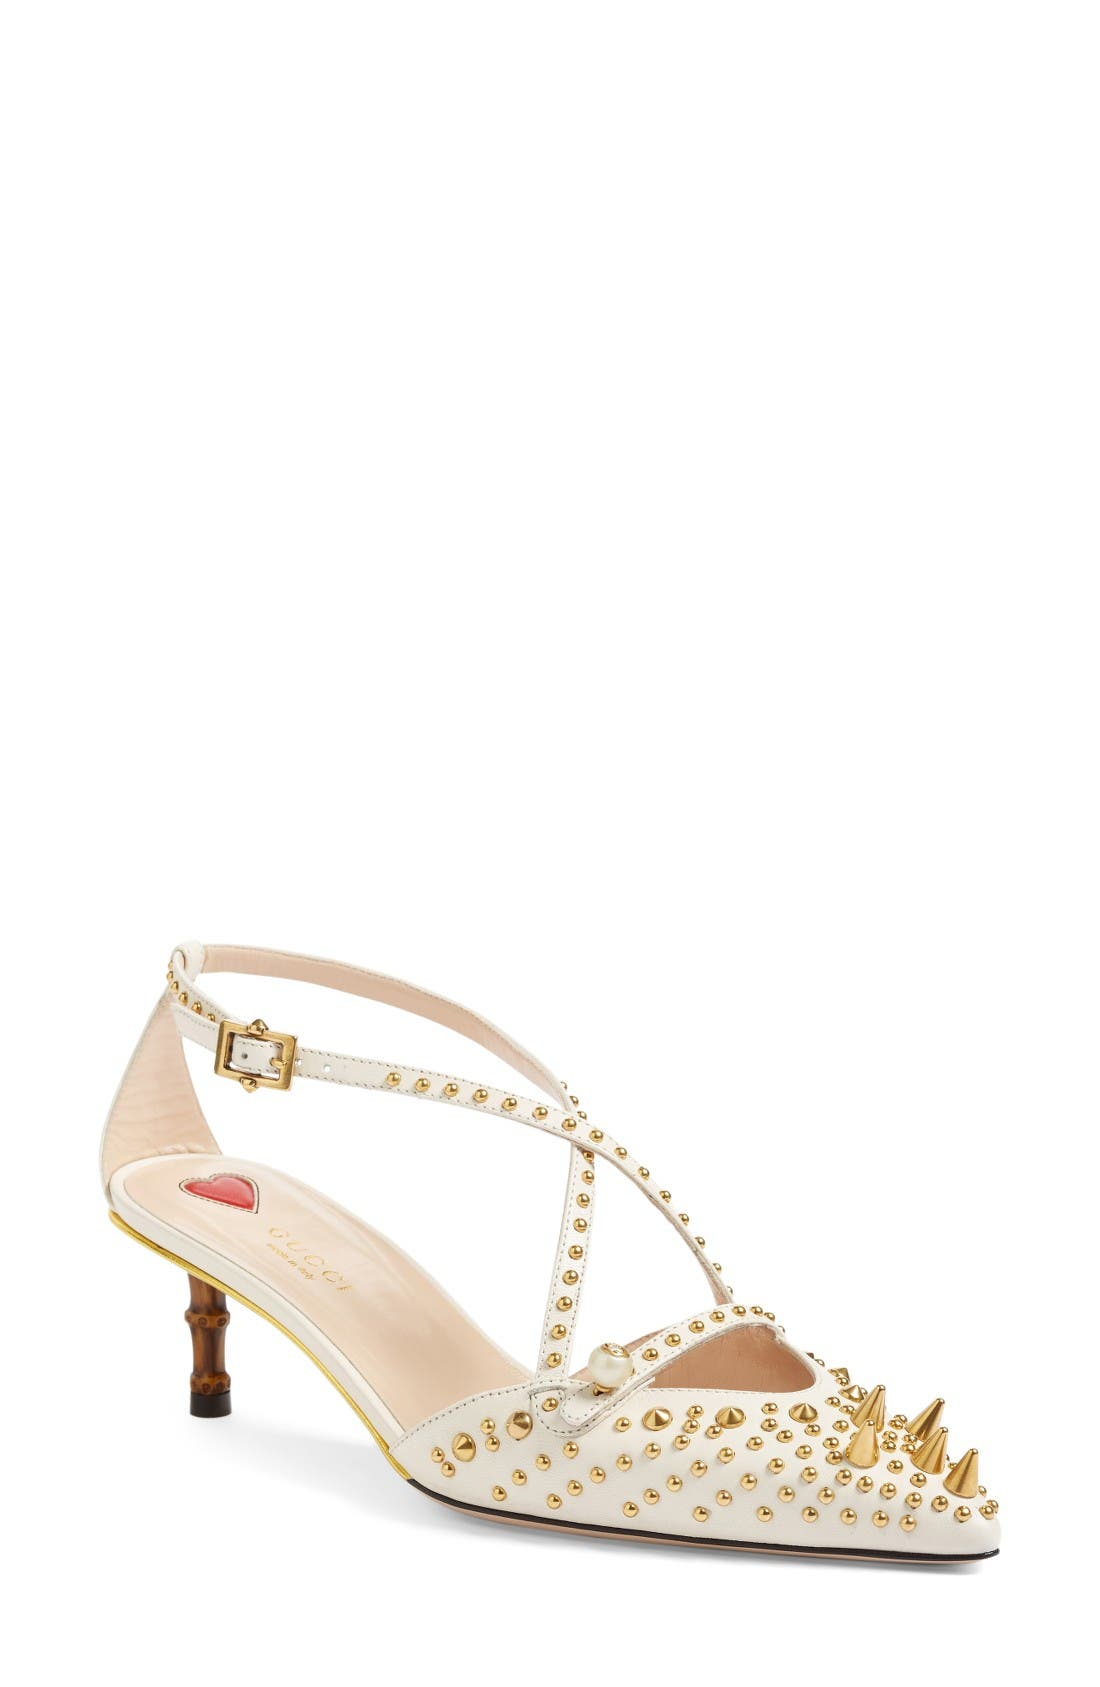 Alternate Image 1 Selected - Gucci Unia Studded Pump (Women)